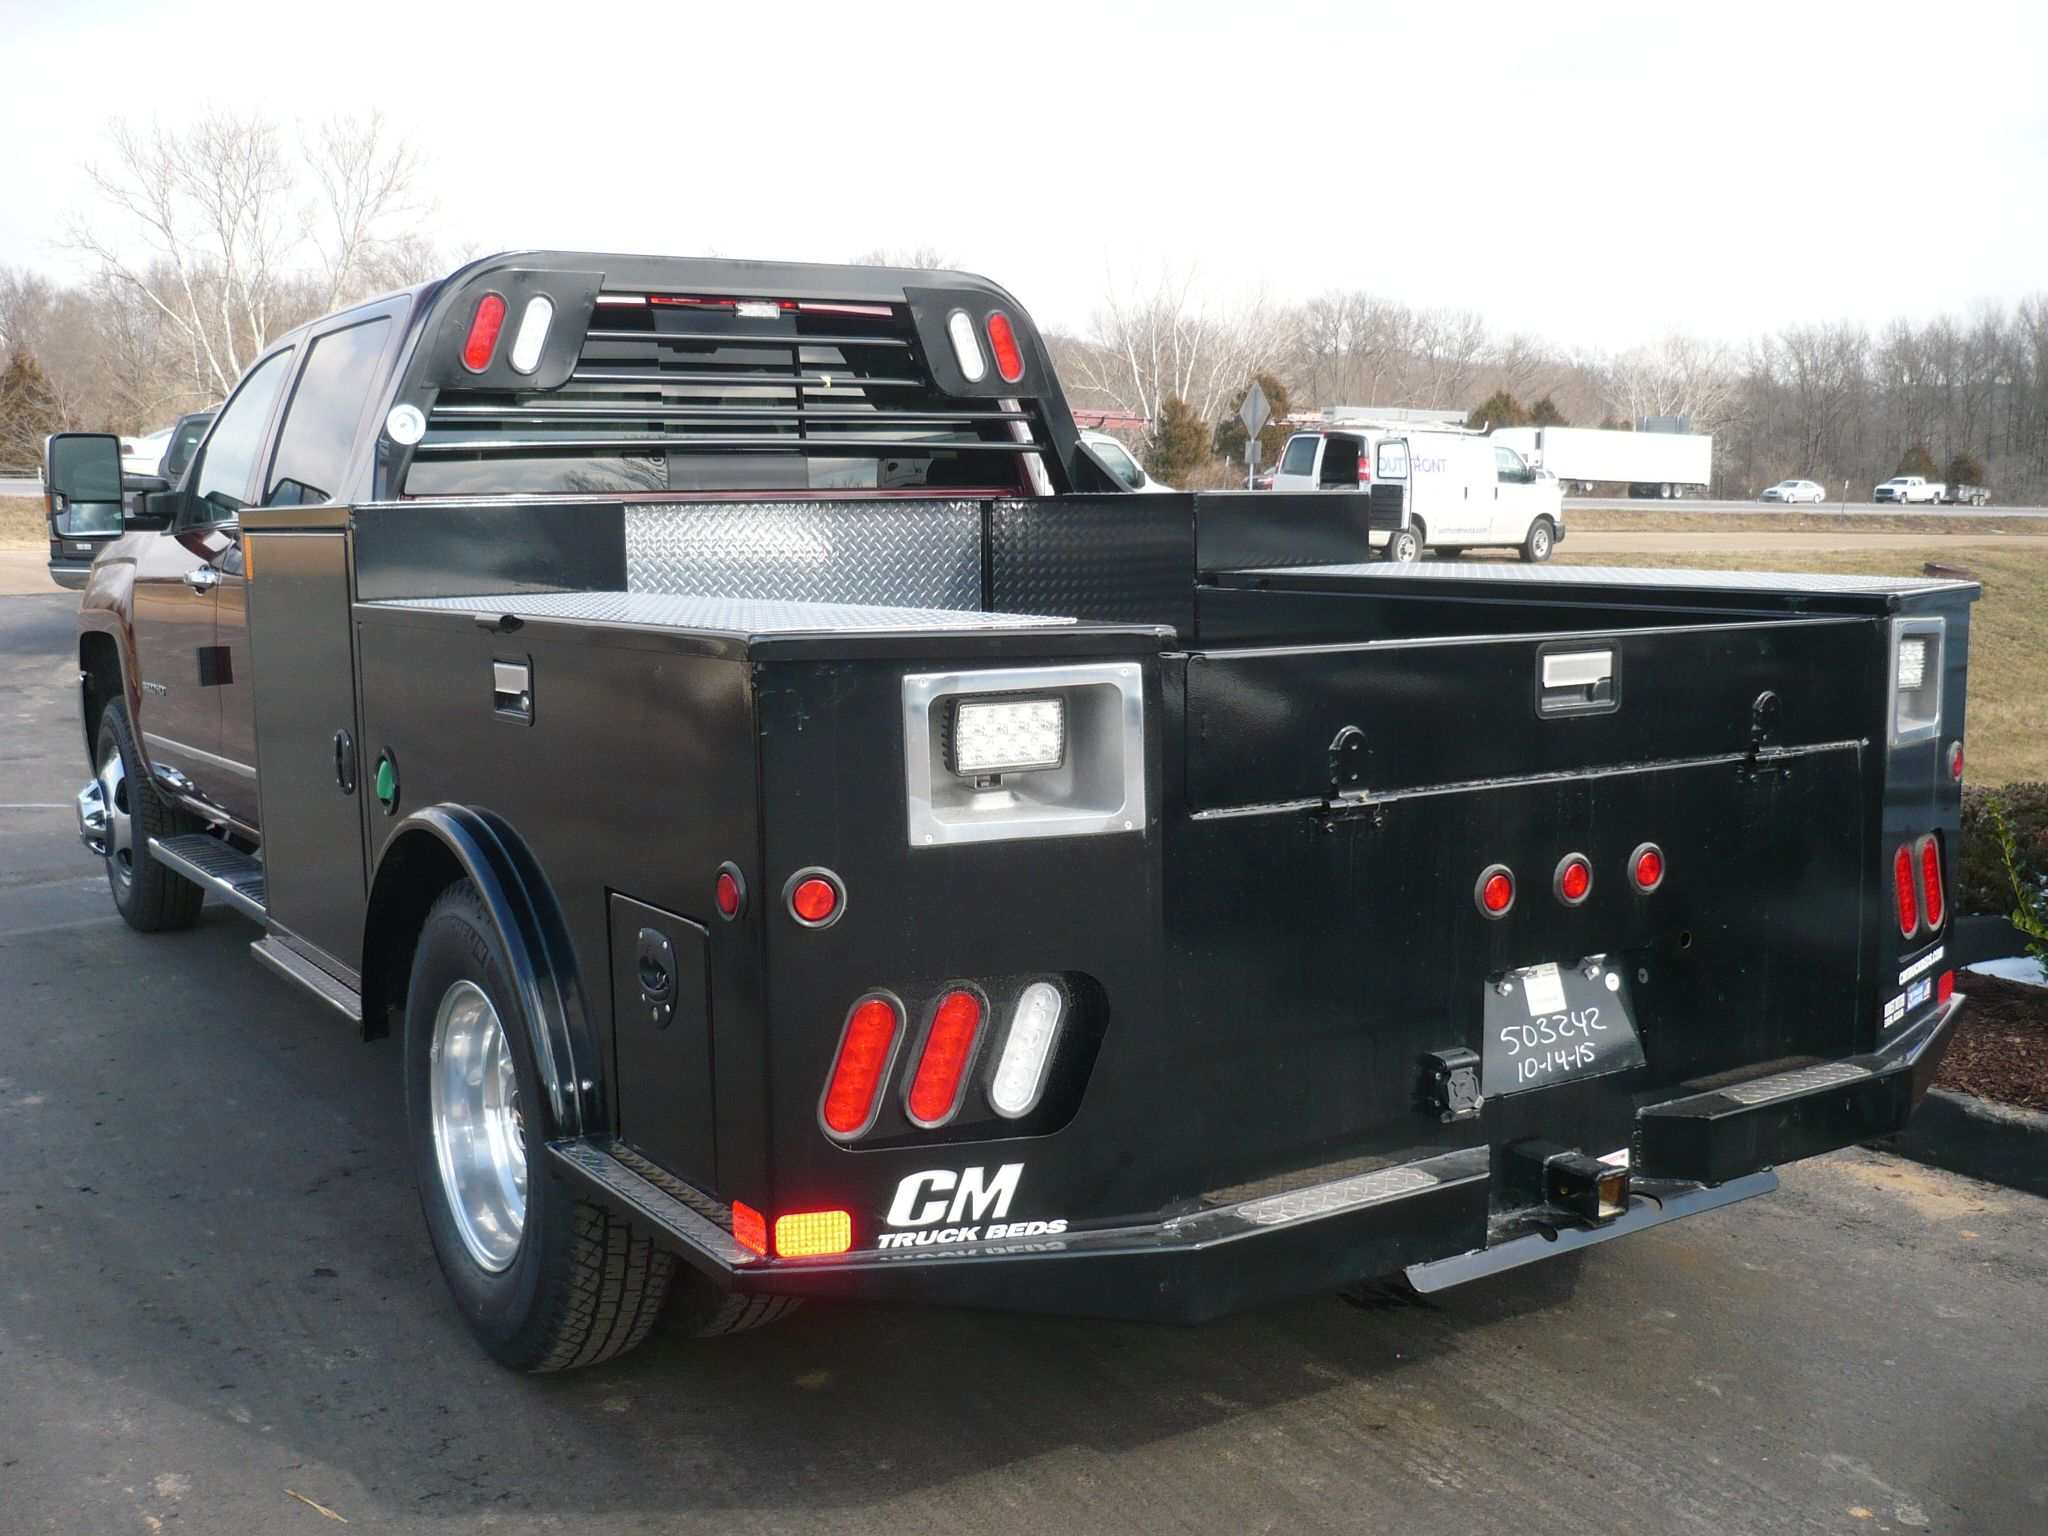 2016 chevrolet 3500 with cm tm deluxe bed truck beds pinterest chevrolet truck bed and. Black Bedroom Furniture Sets. Home Design Ideas